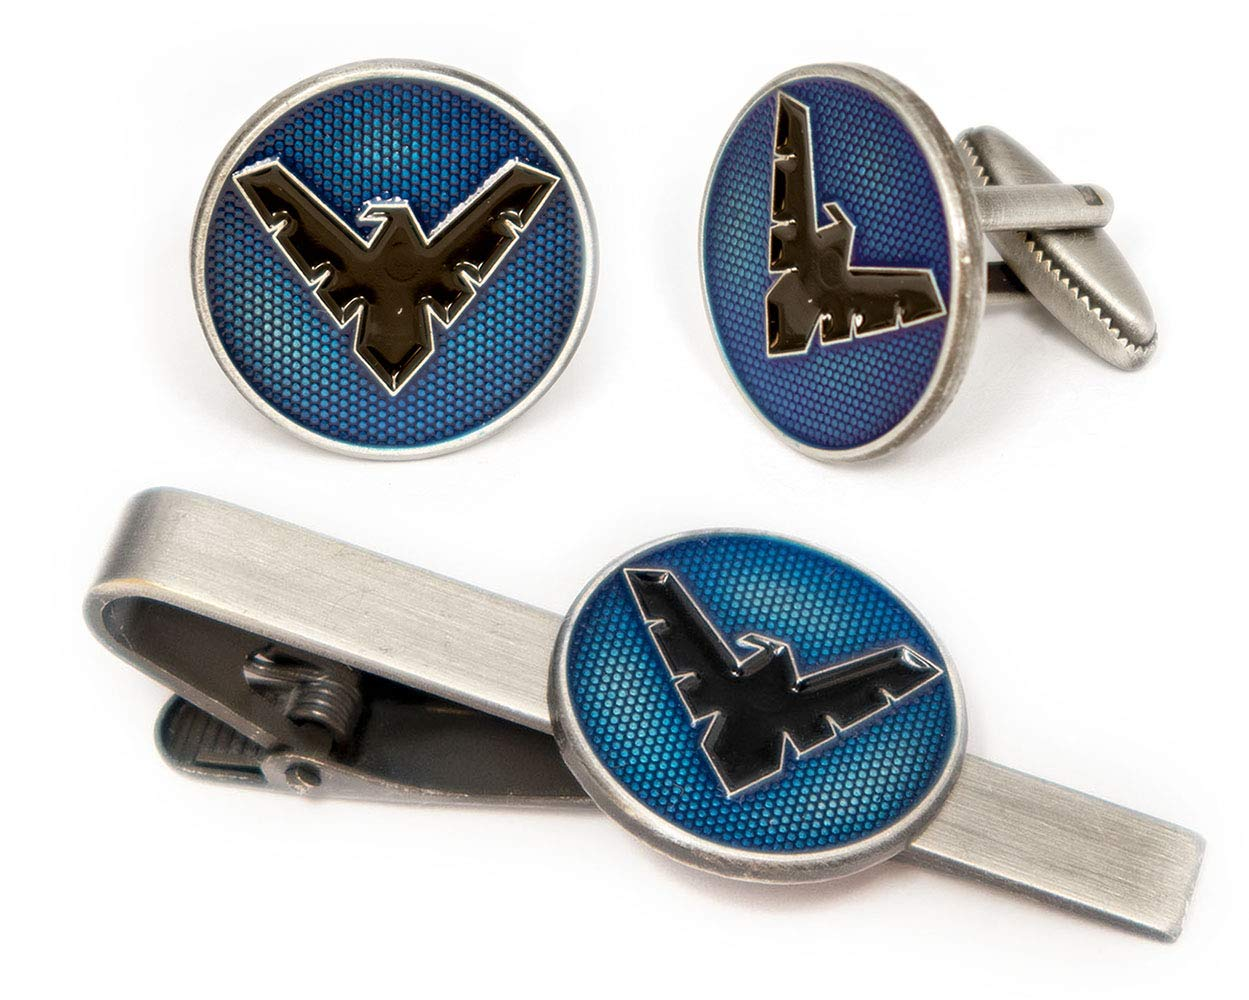 SharedImagination Nightwing Tie Clip, Justice League Logo Cufflinks, DC Comics Batman vs Superman Tie Tack Jewelry, Teen Titans Robin Cuff Links Link Wedding Party Gift, Avengers Groomsmen Gifts by SharedImagination